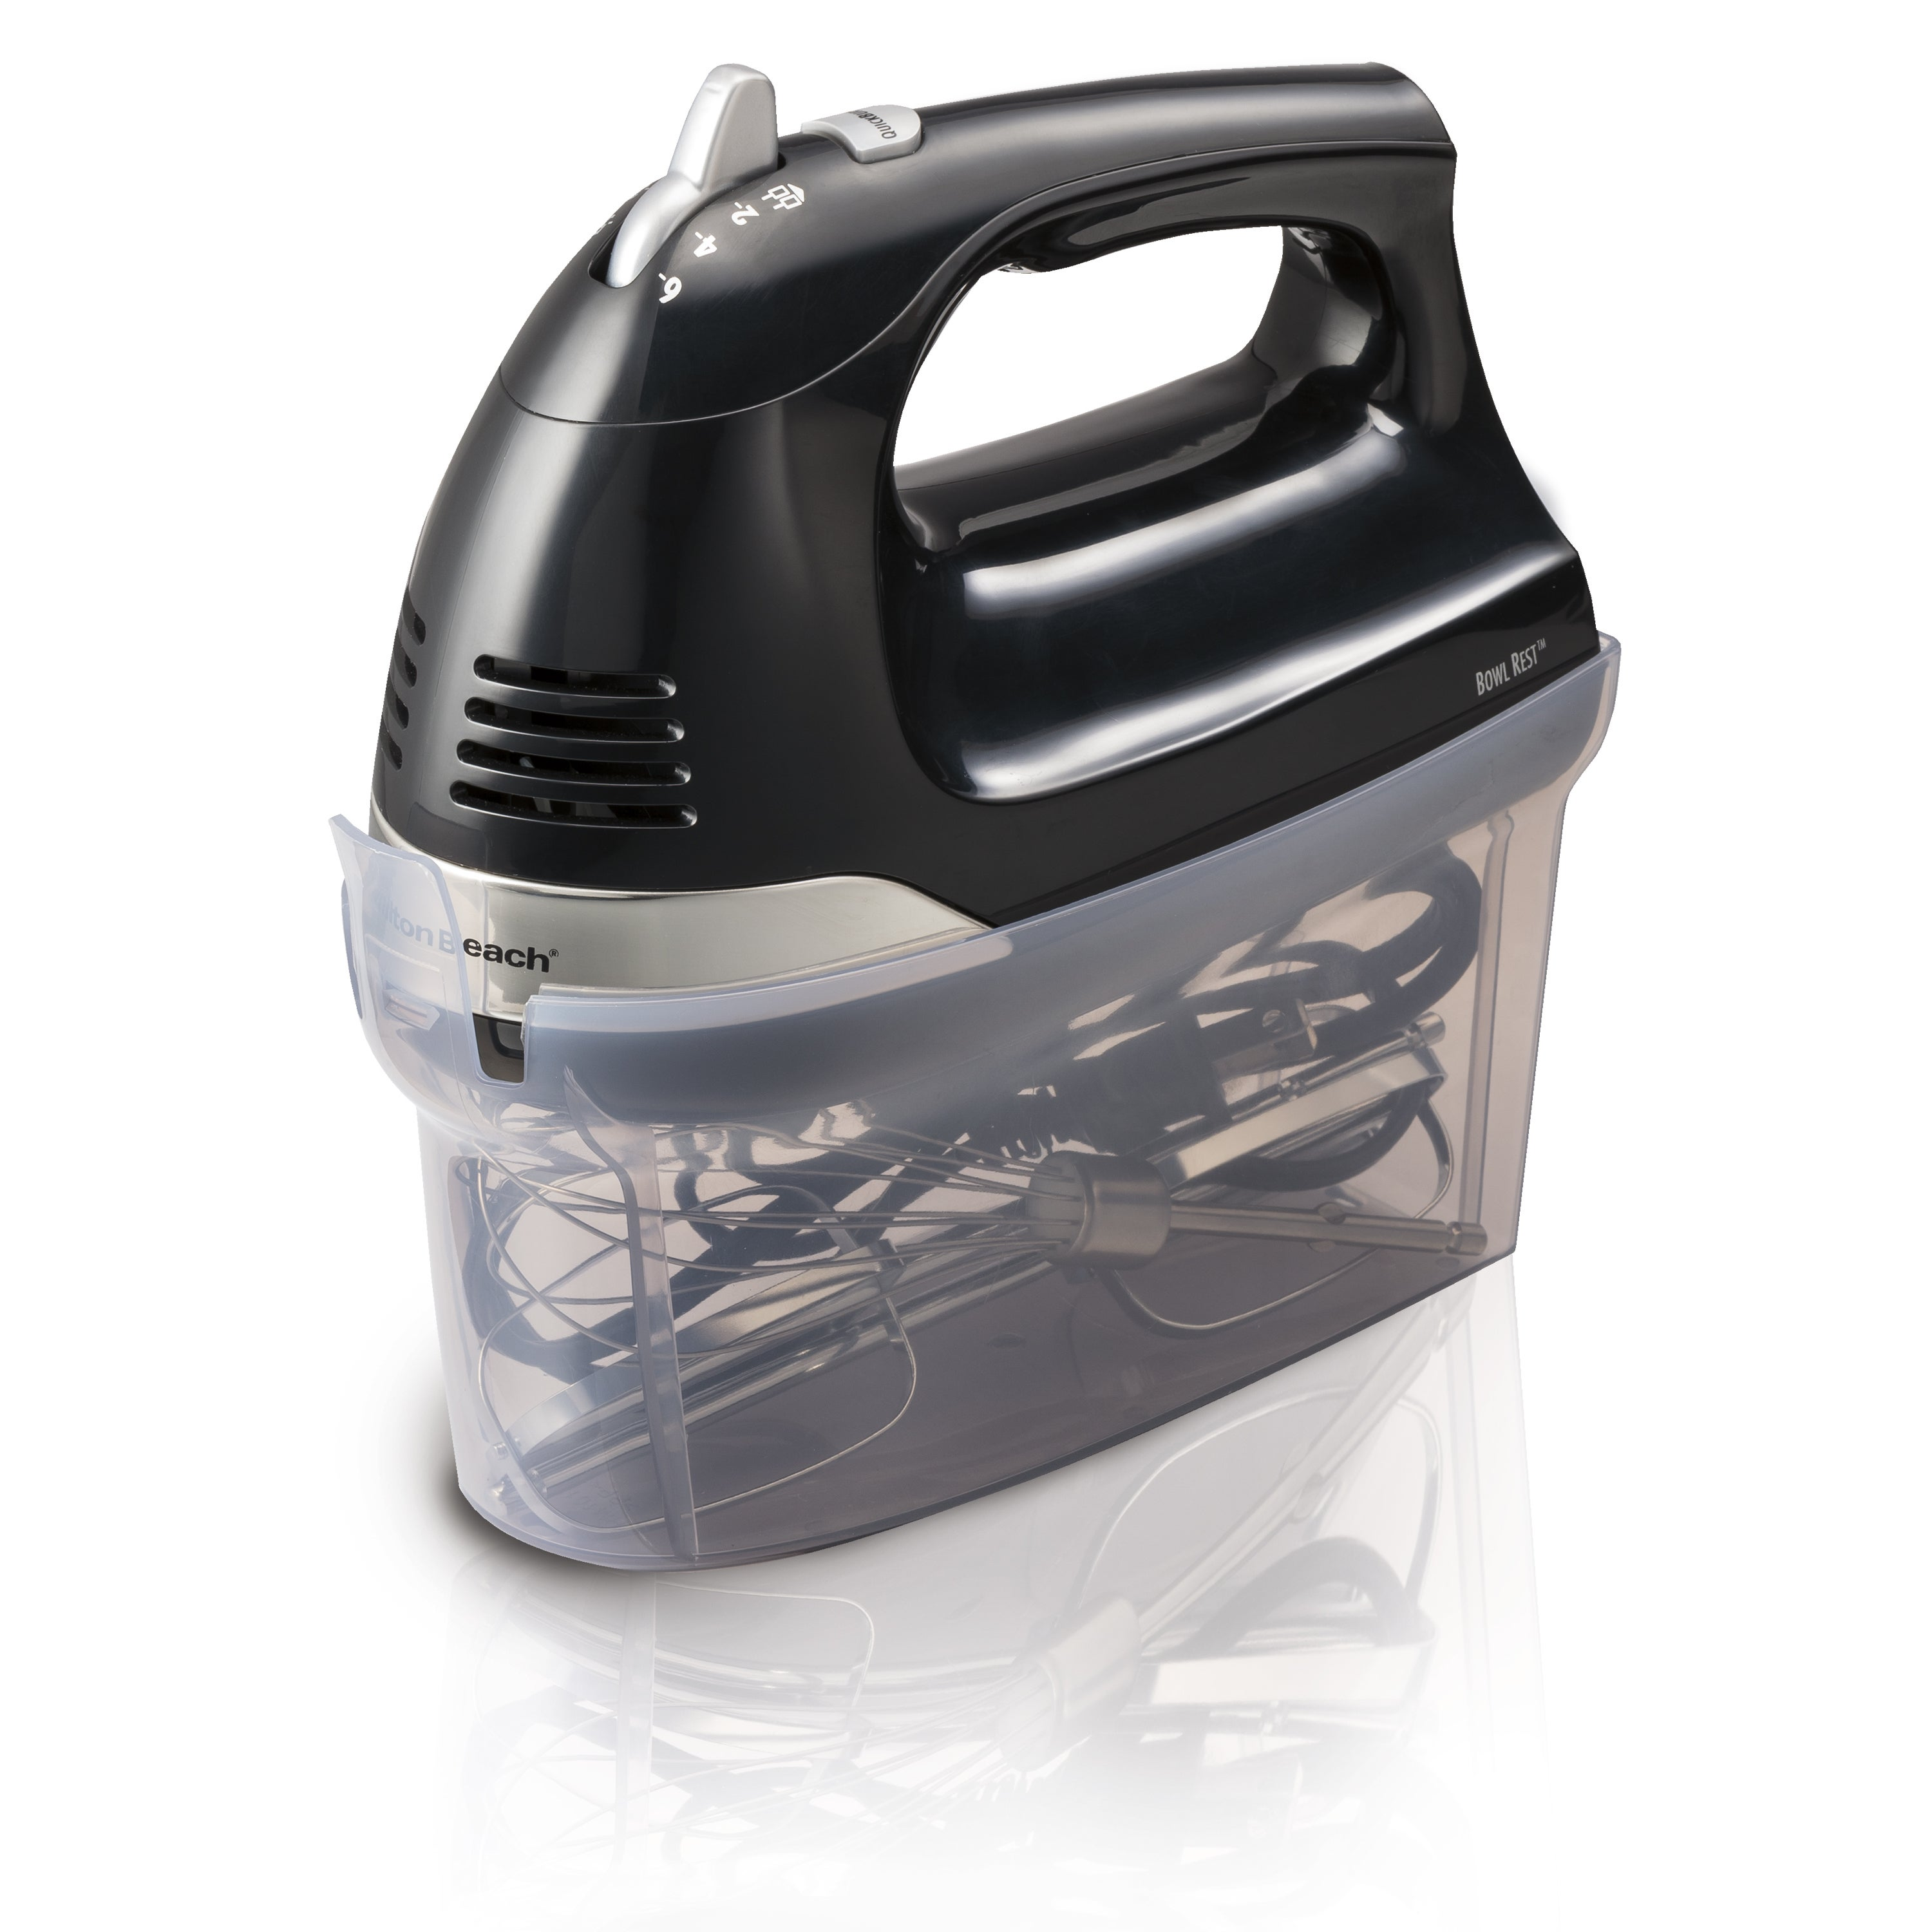 Shop Hamilton Beach Black 6 Speed Hand Mixer With Snap On Case Of Snapon Perfect For Small To Medium Cleaning Jobs The Free Shipping Orders Over 45 16201371